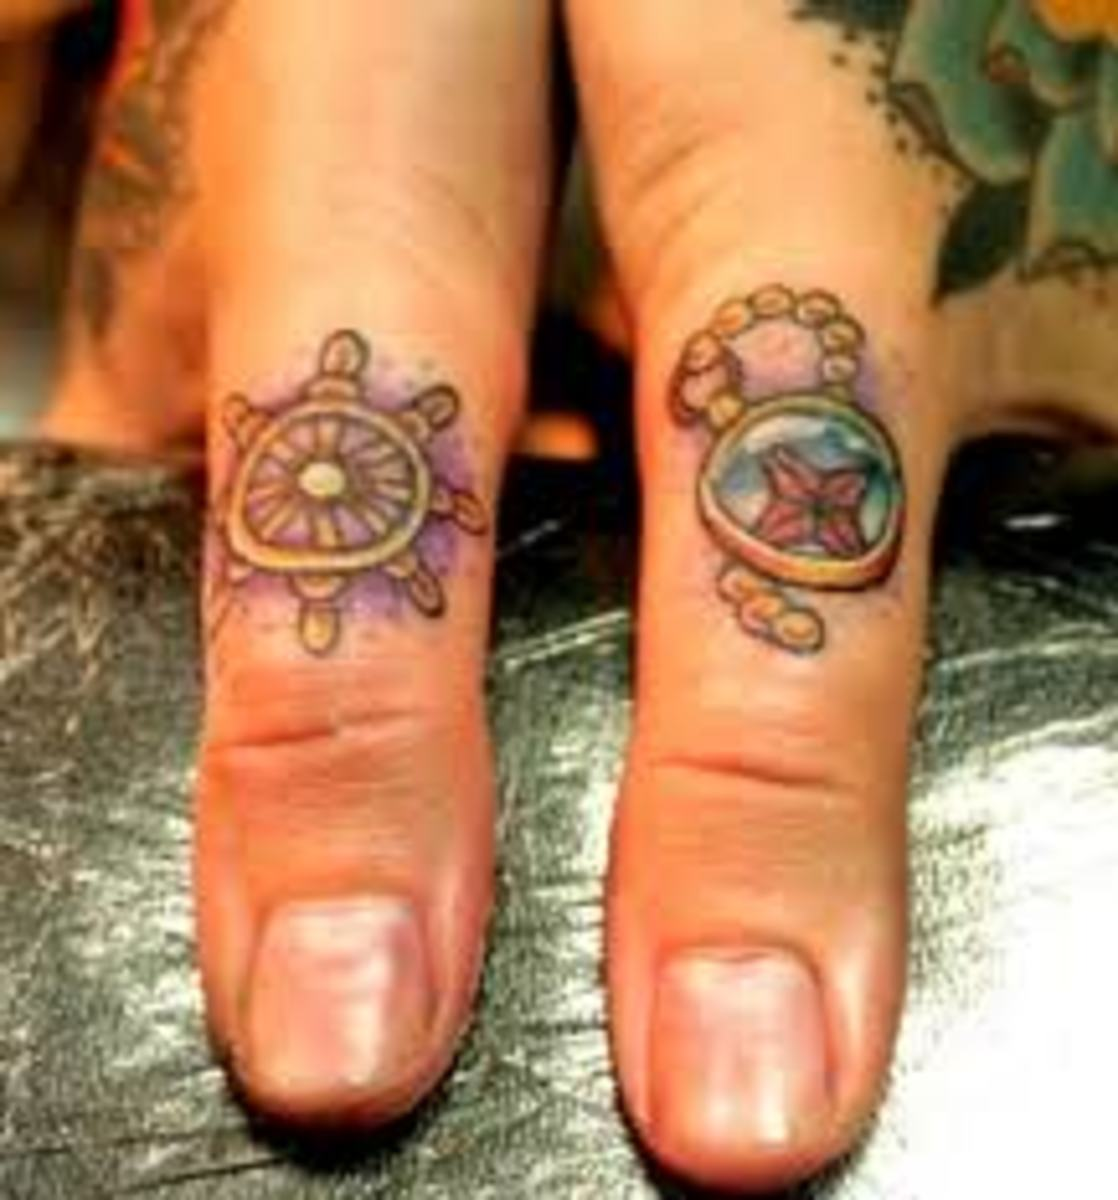 Very ornate thumb tattoos. Wonder how these will stand the test of time.